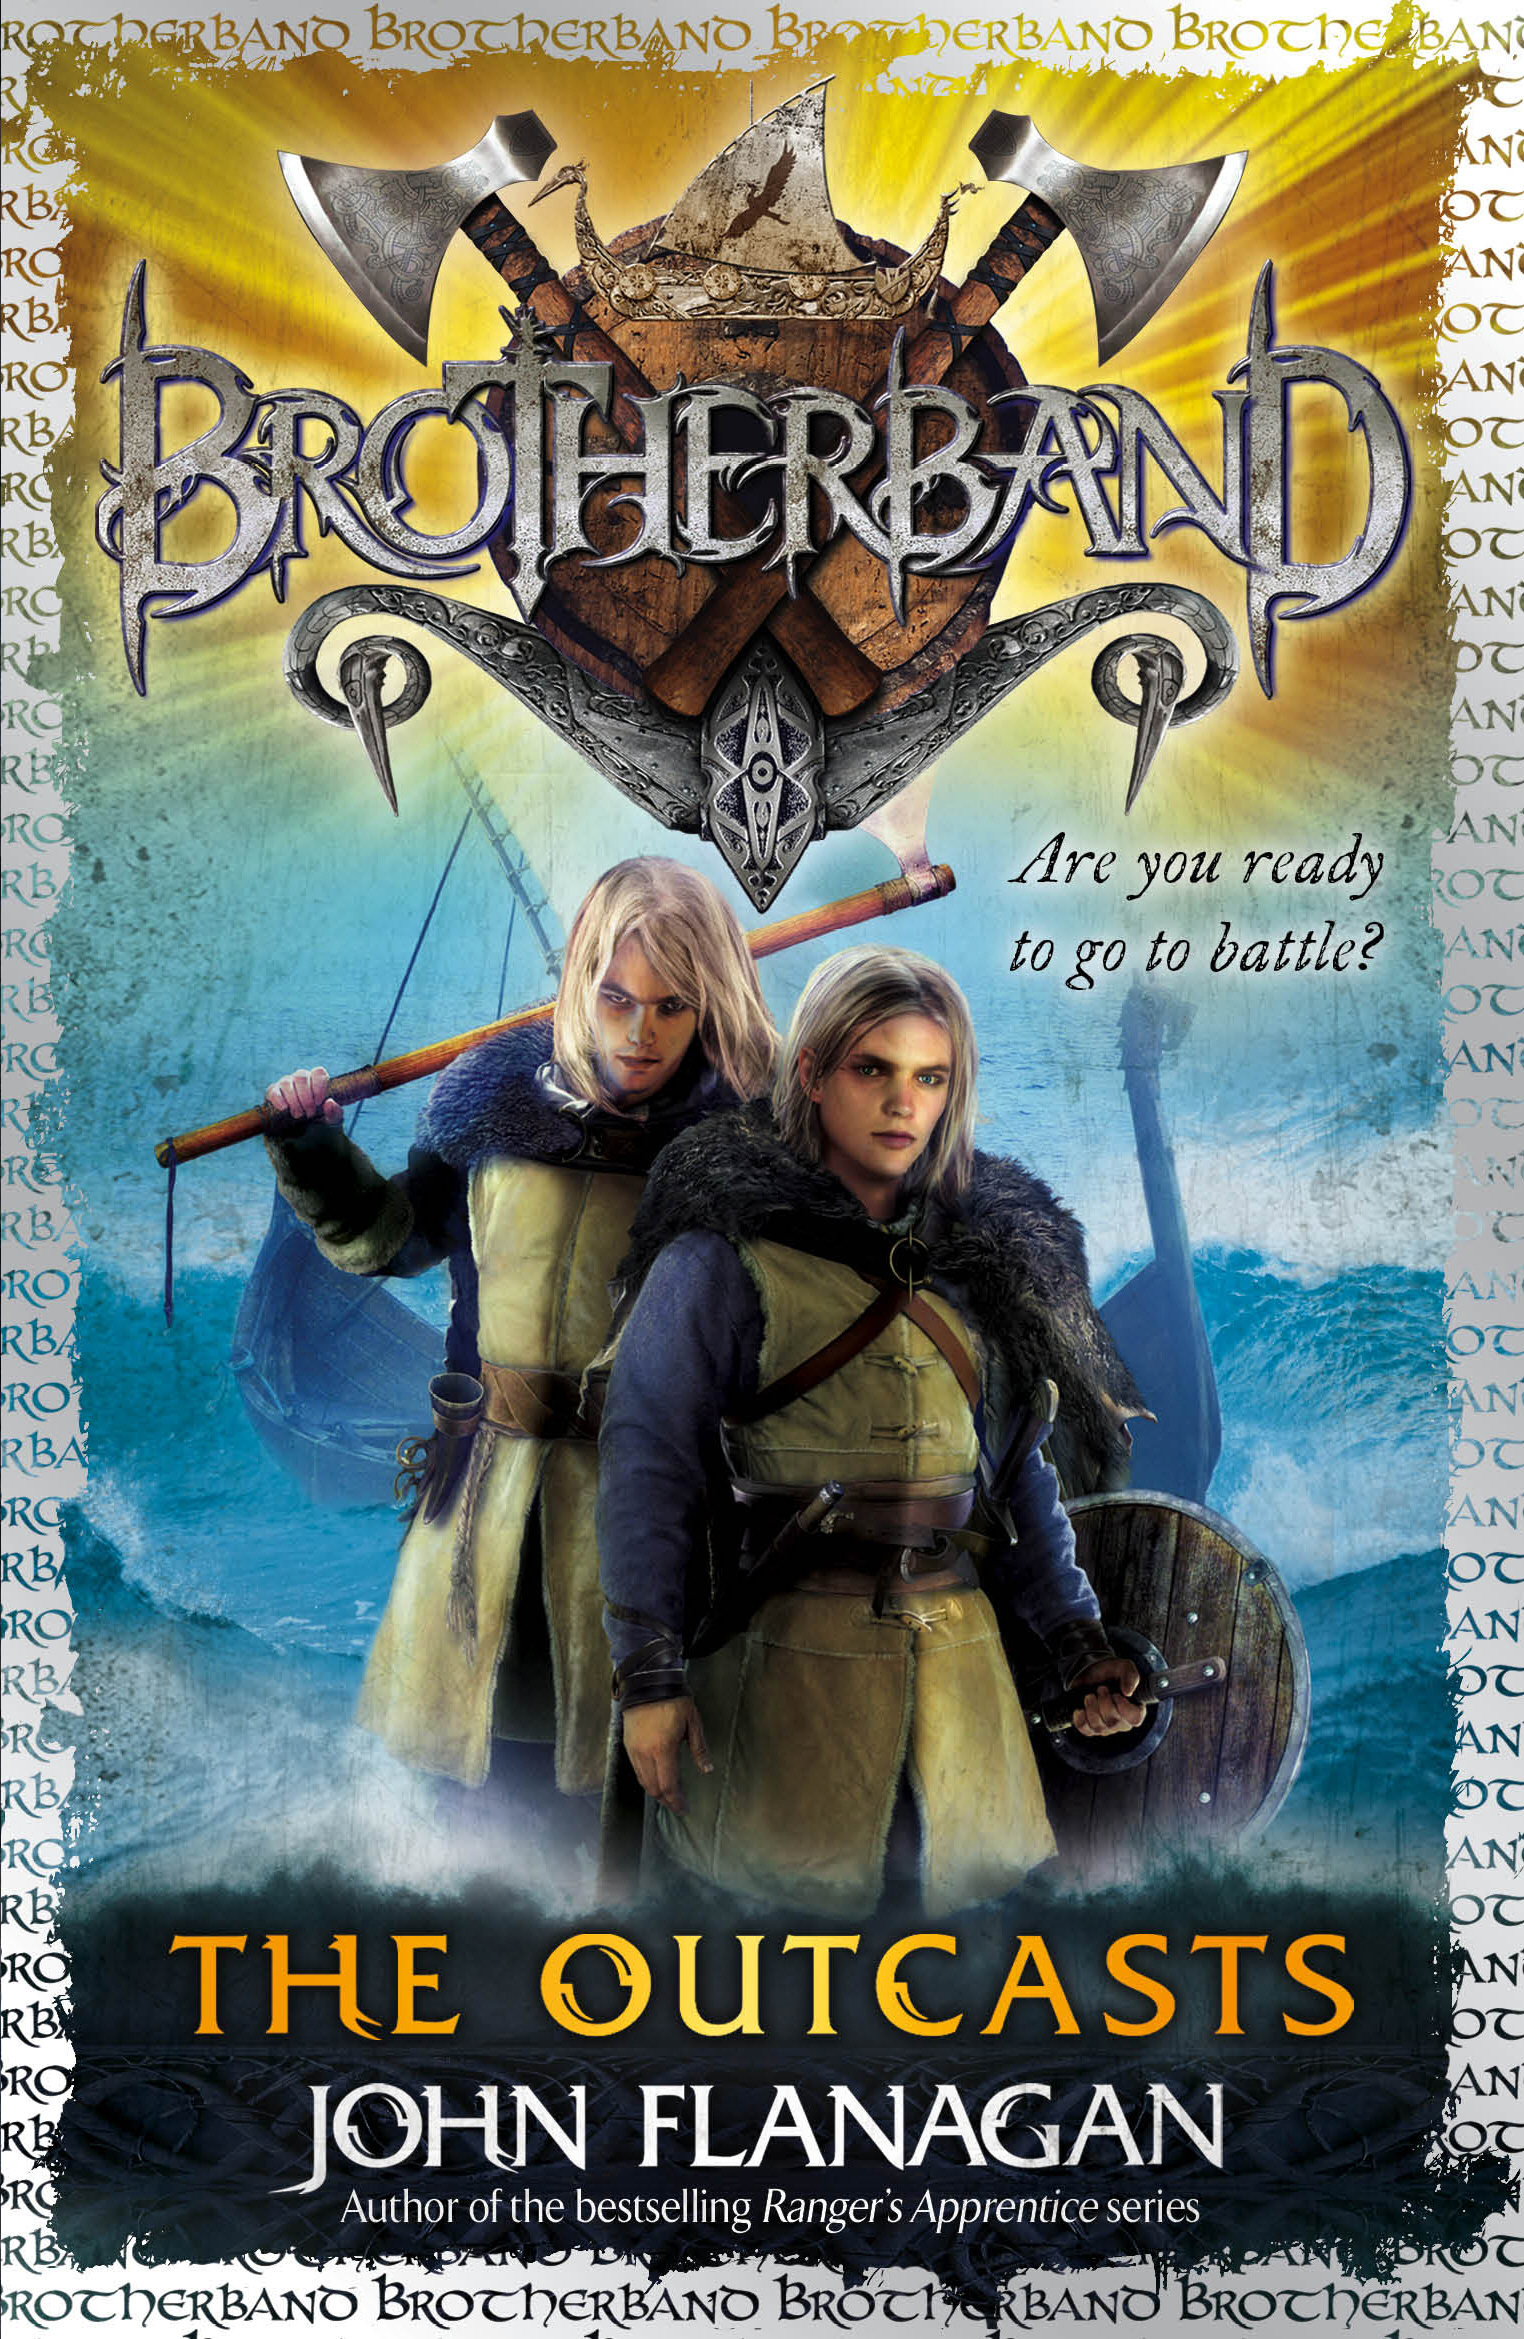 Brotherband: The Outcasts: Book One Book One